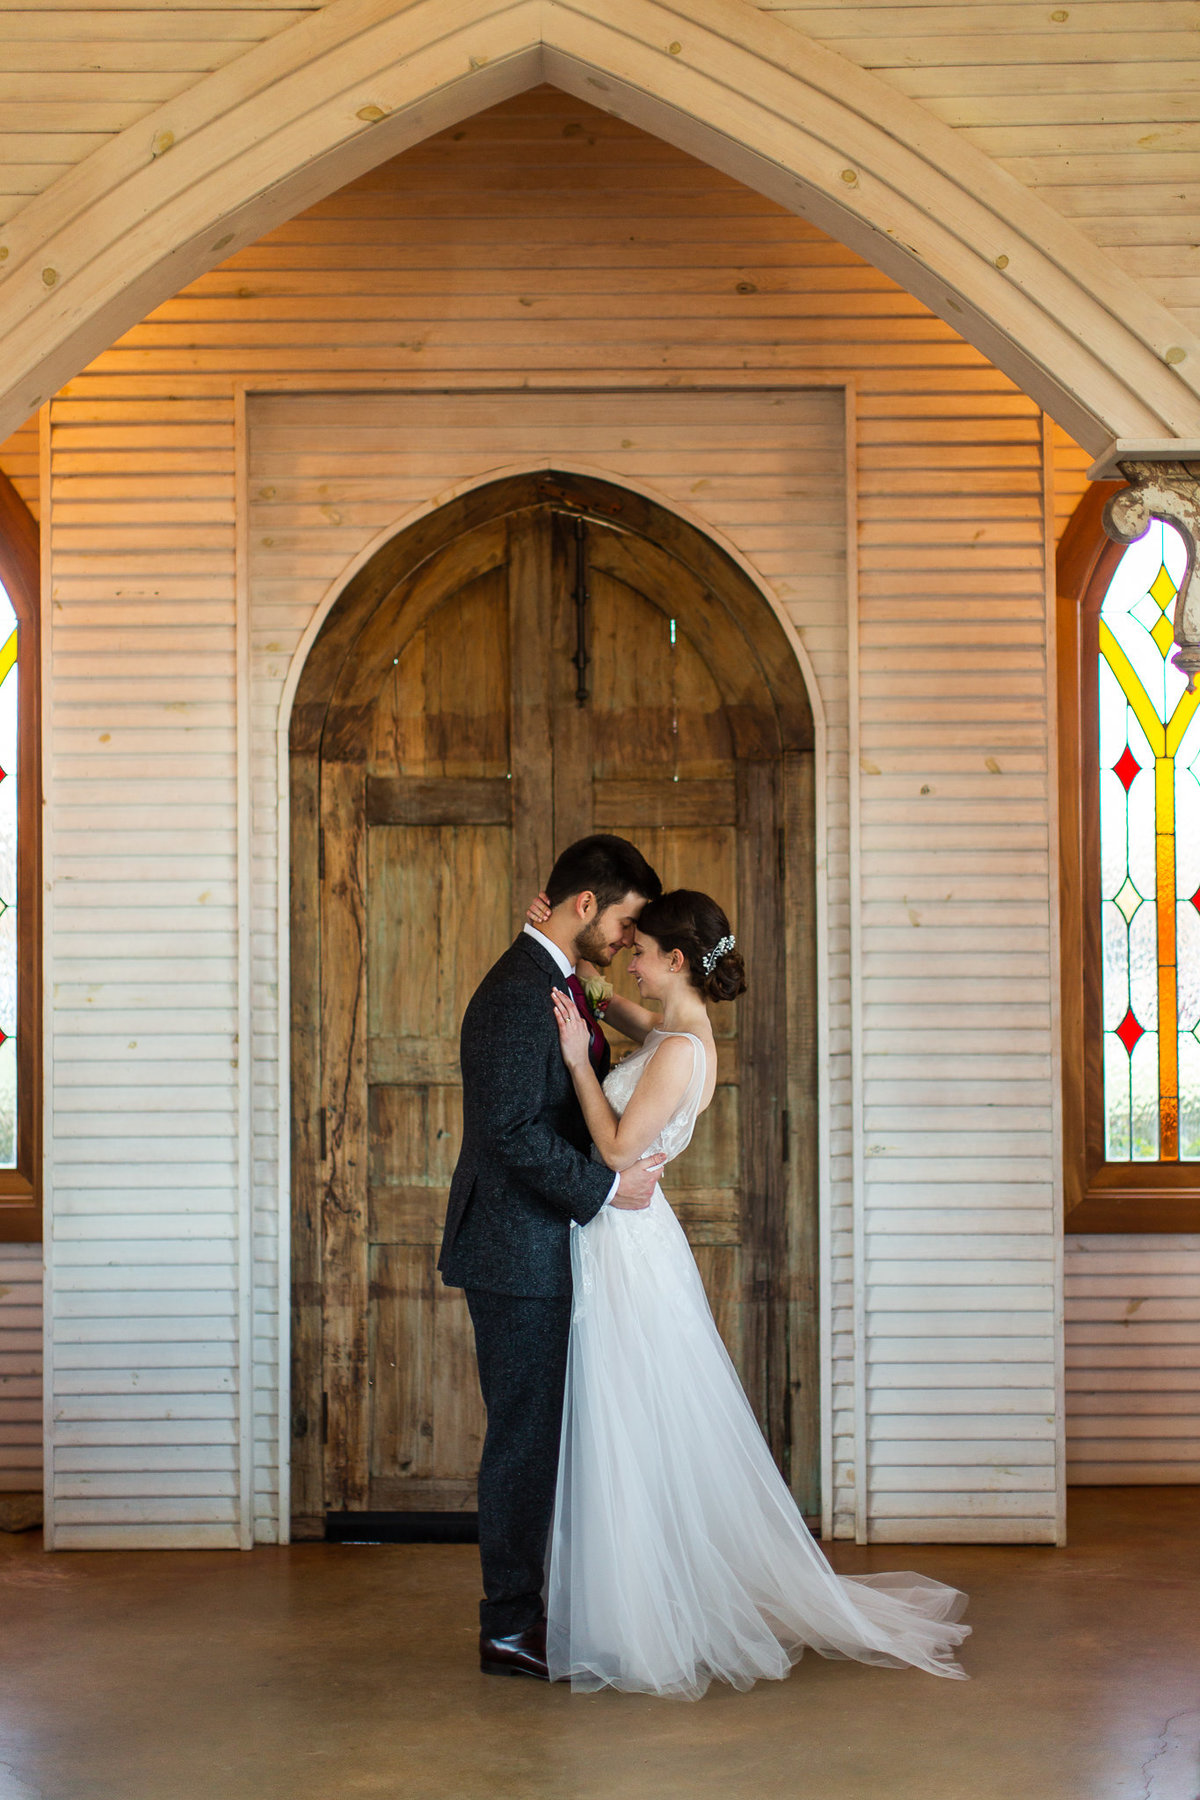 madeline_c_photography_dallas_wedding_photographer_megan_connor-89